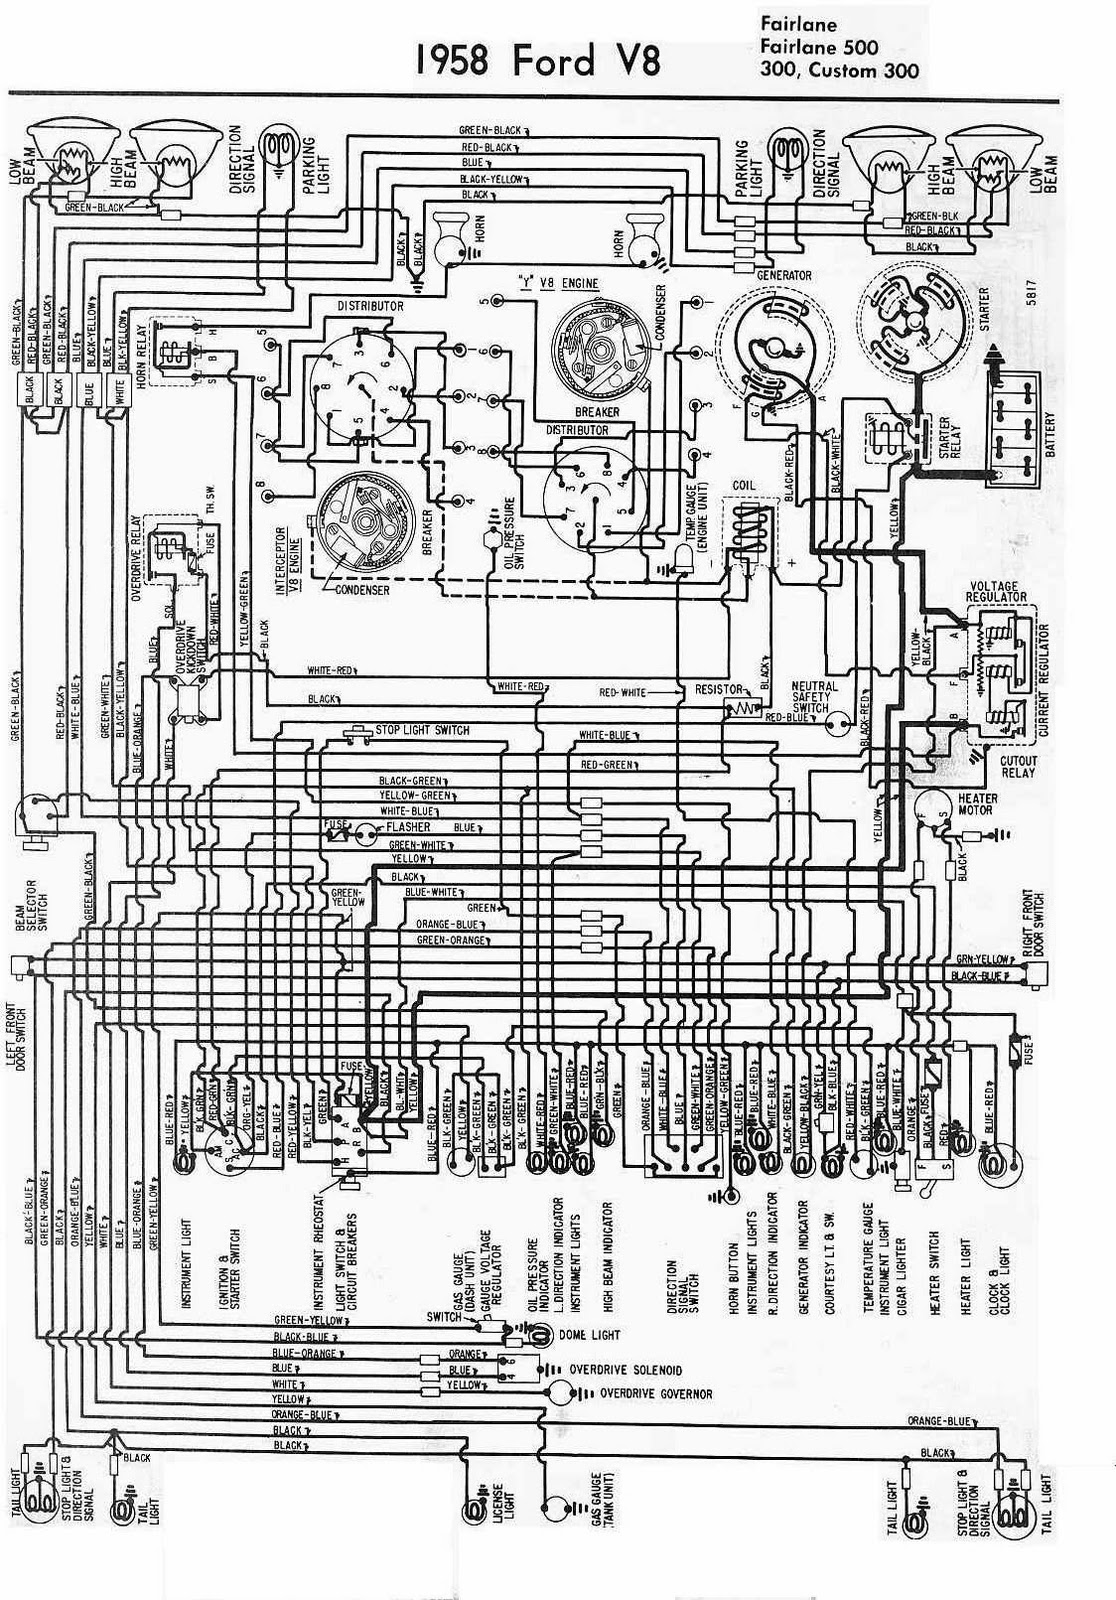 1966 ford galaxie wiring diagram wiring data rh unroutine co 1963 ford galaxie 500 xl wiring diagram